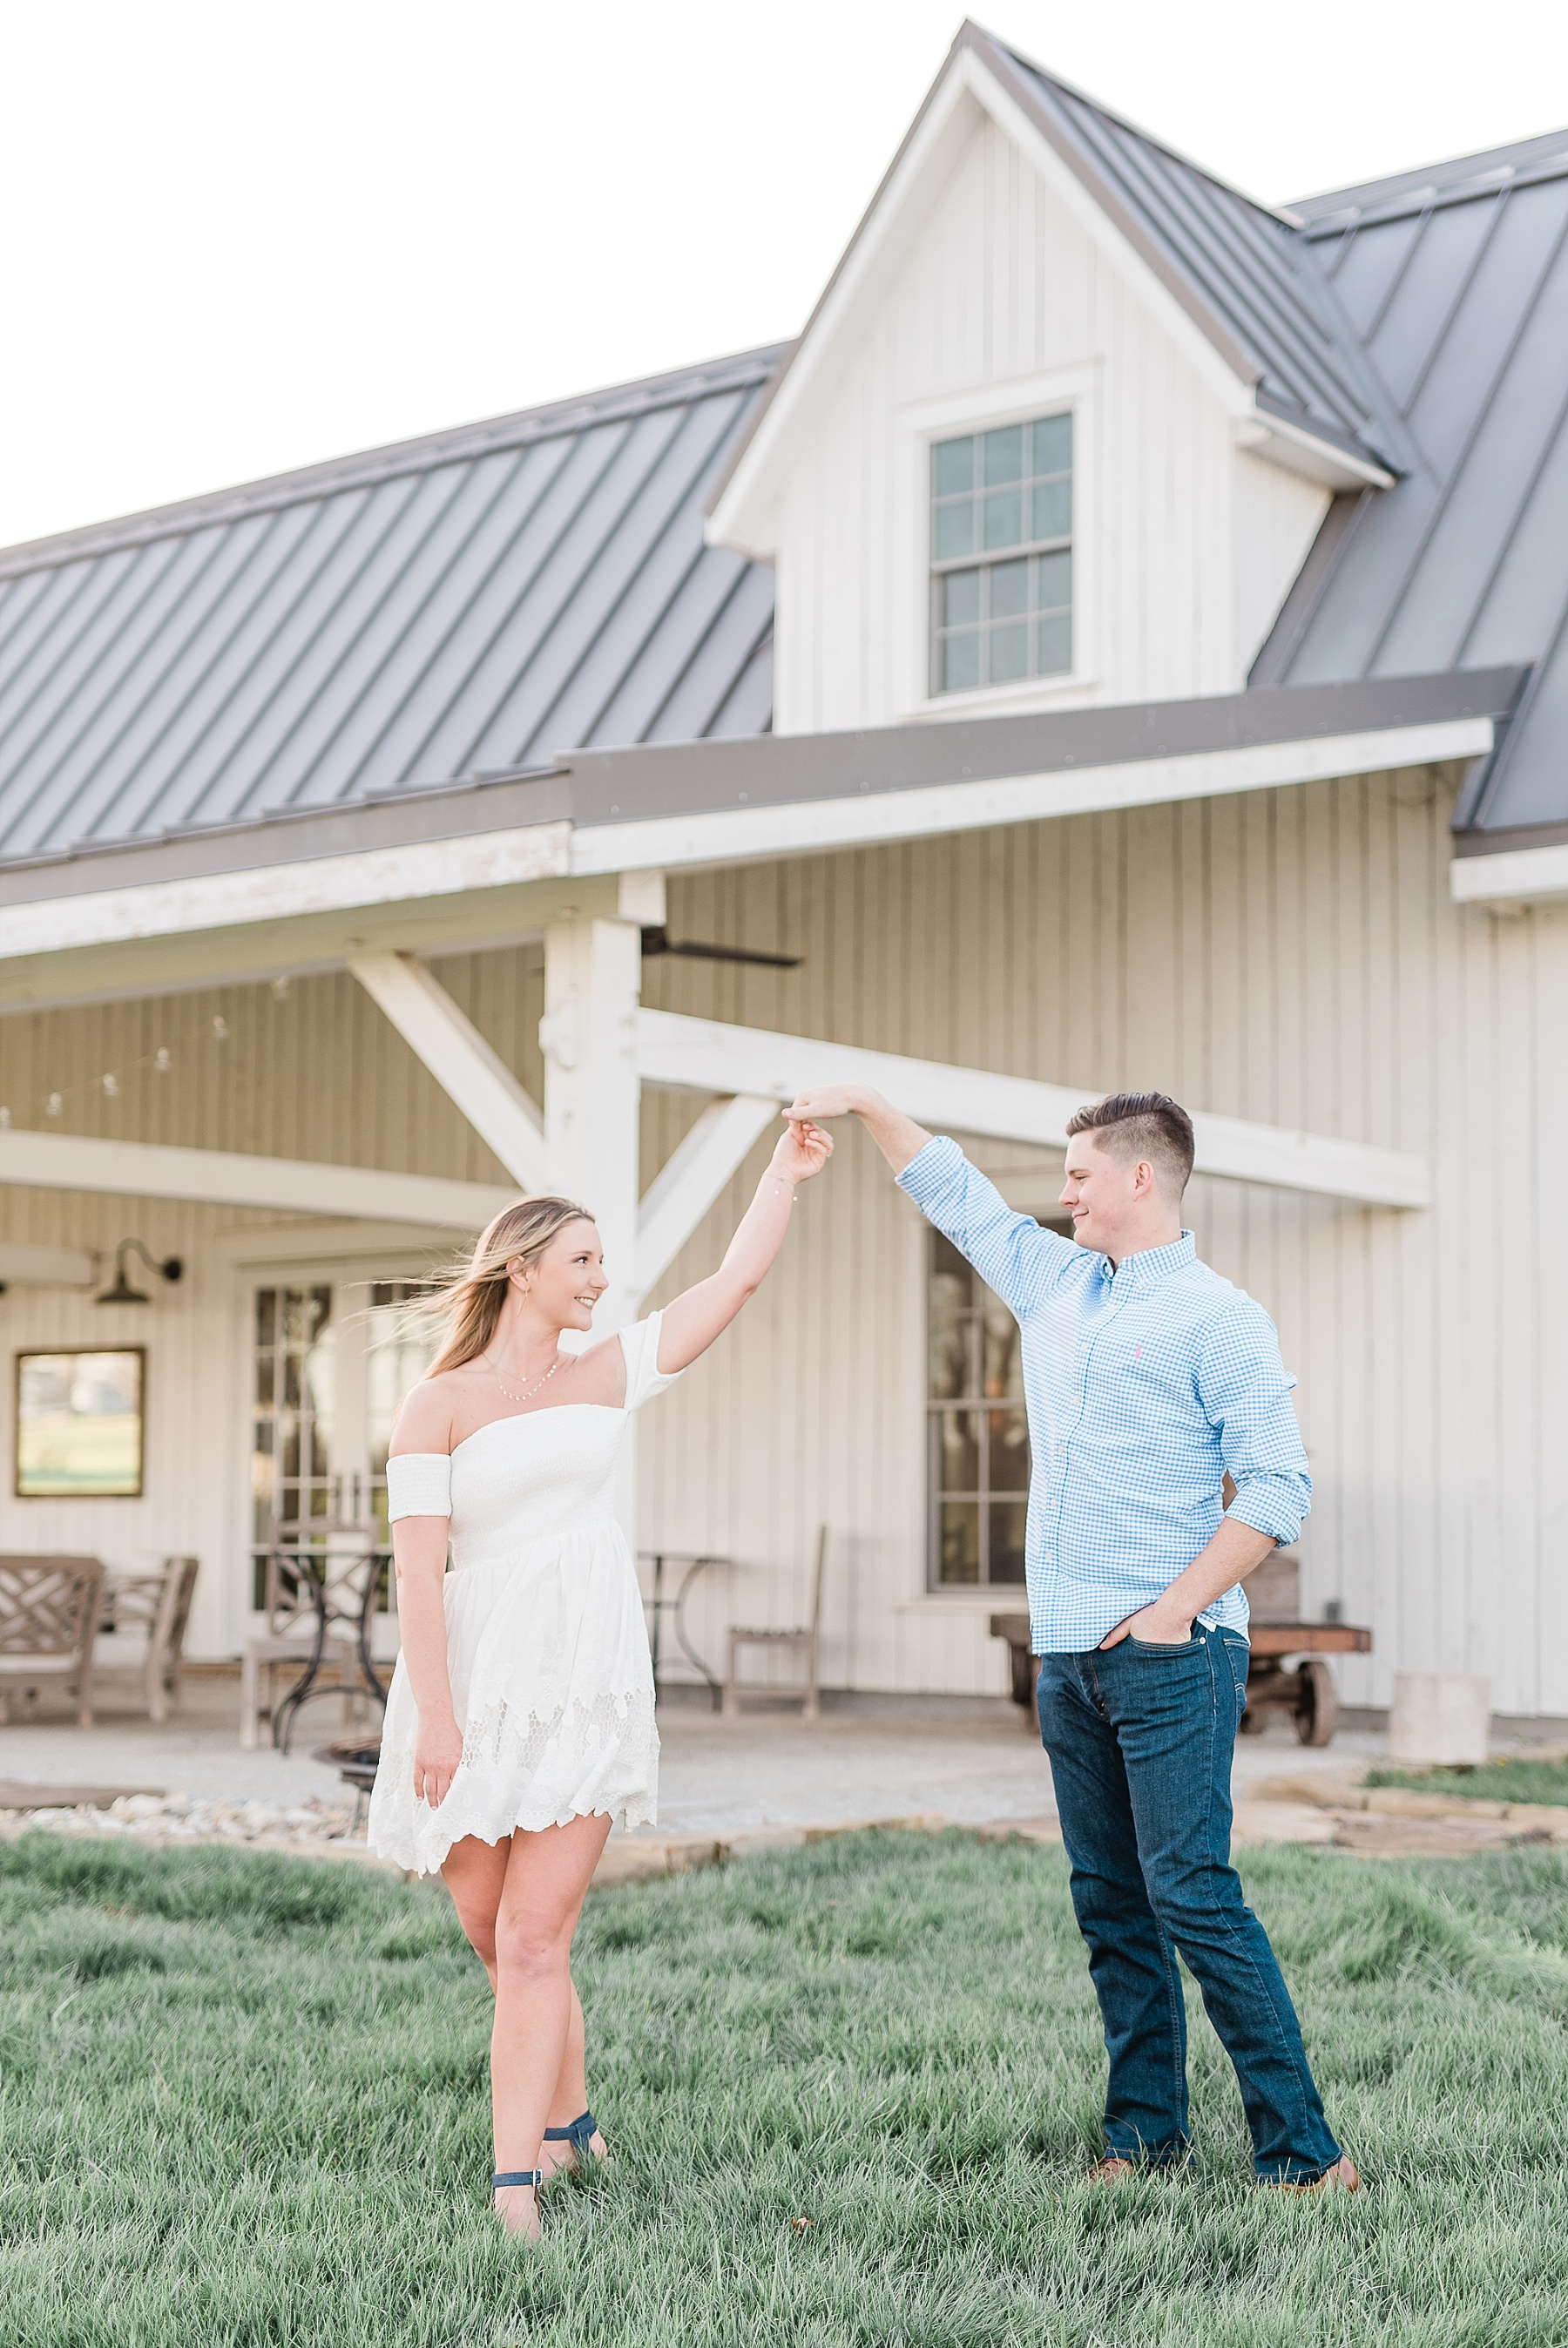 Spring Sunset Engagement Session with High School Sweethearts and Golden Retriever Puppy at Blue Bell Farm Fayette Missouri by Kelsi Kliethermes Photography_0014.jpg